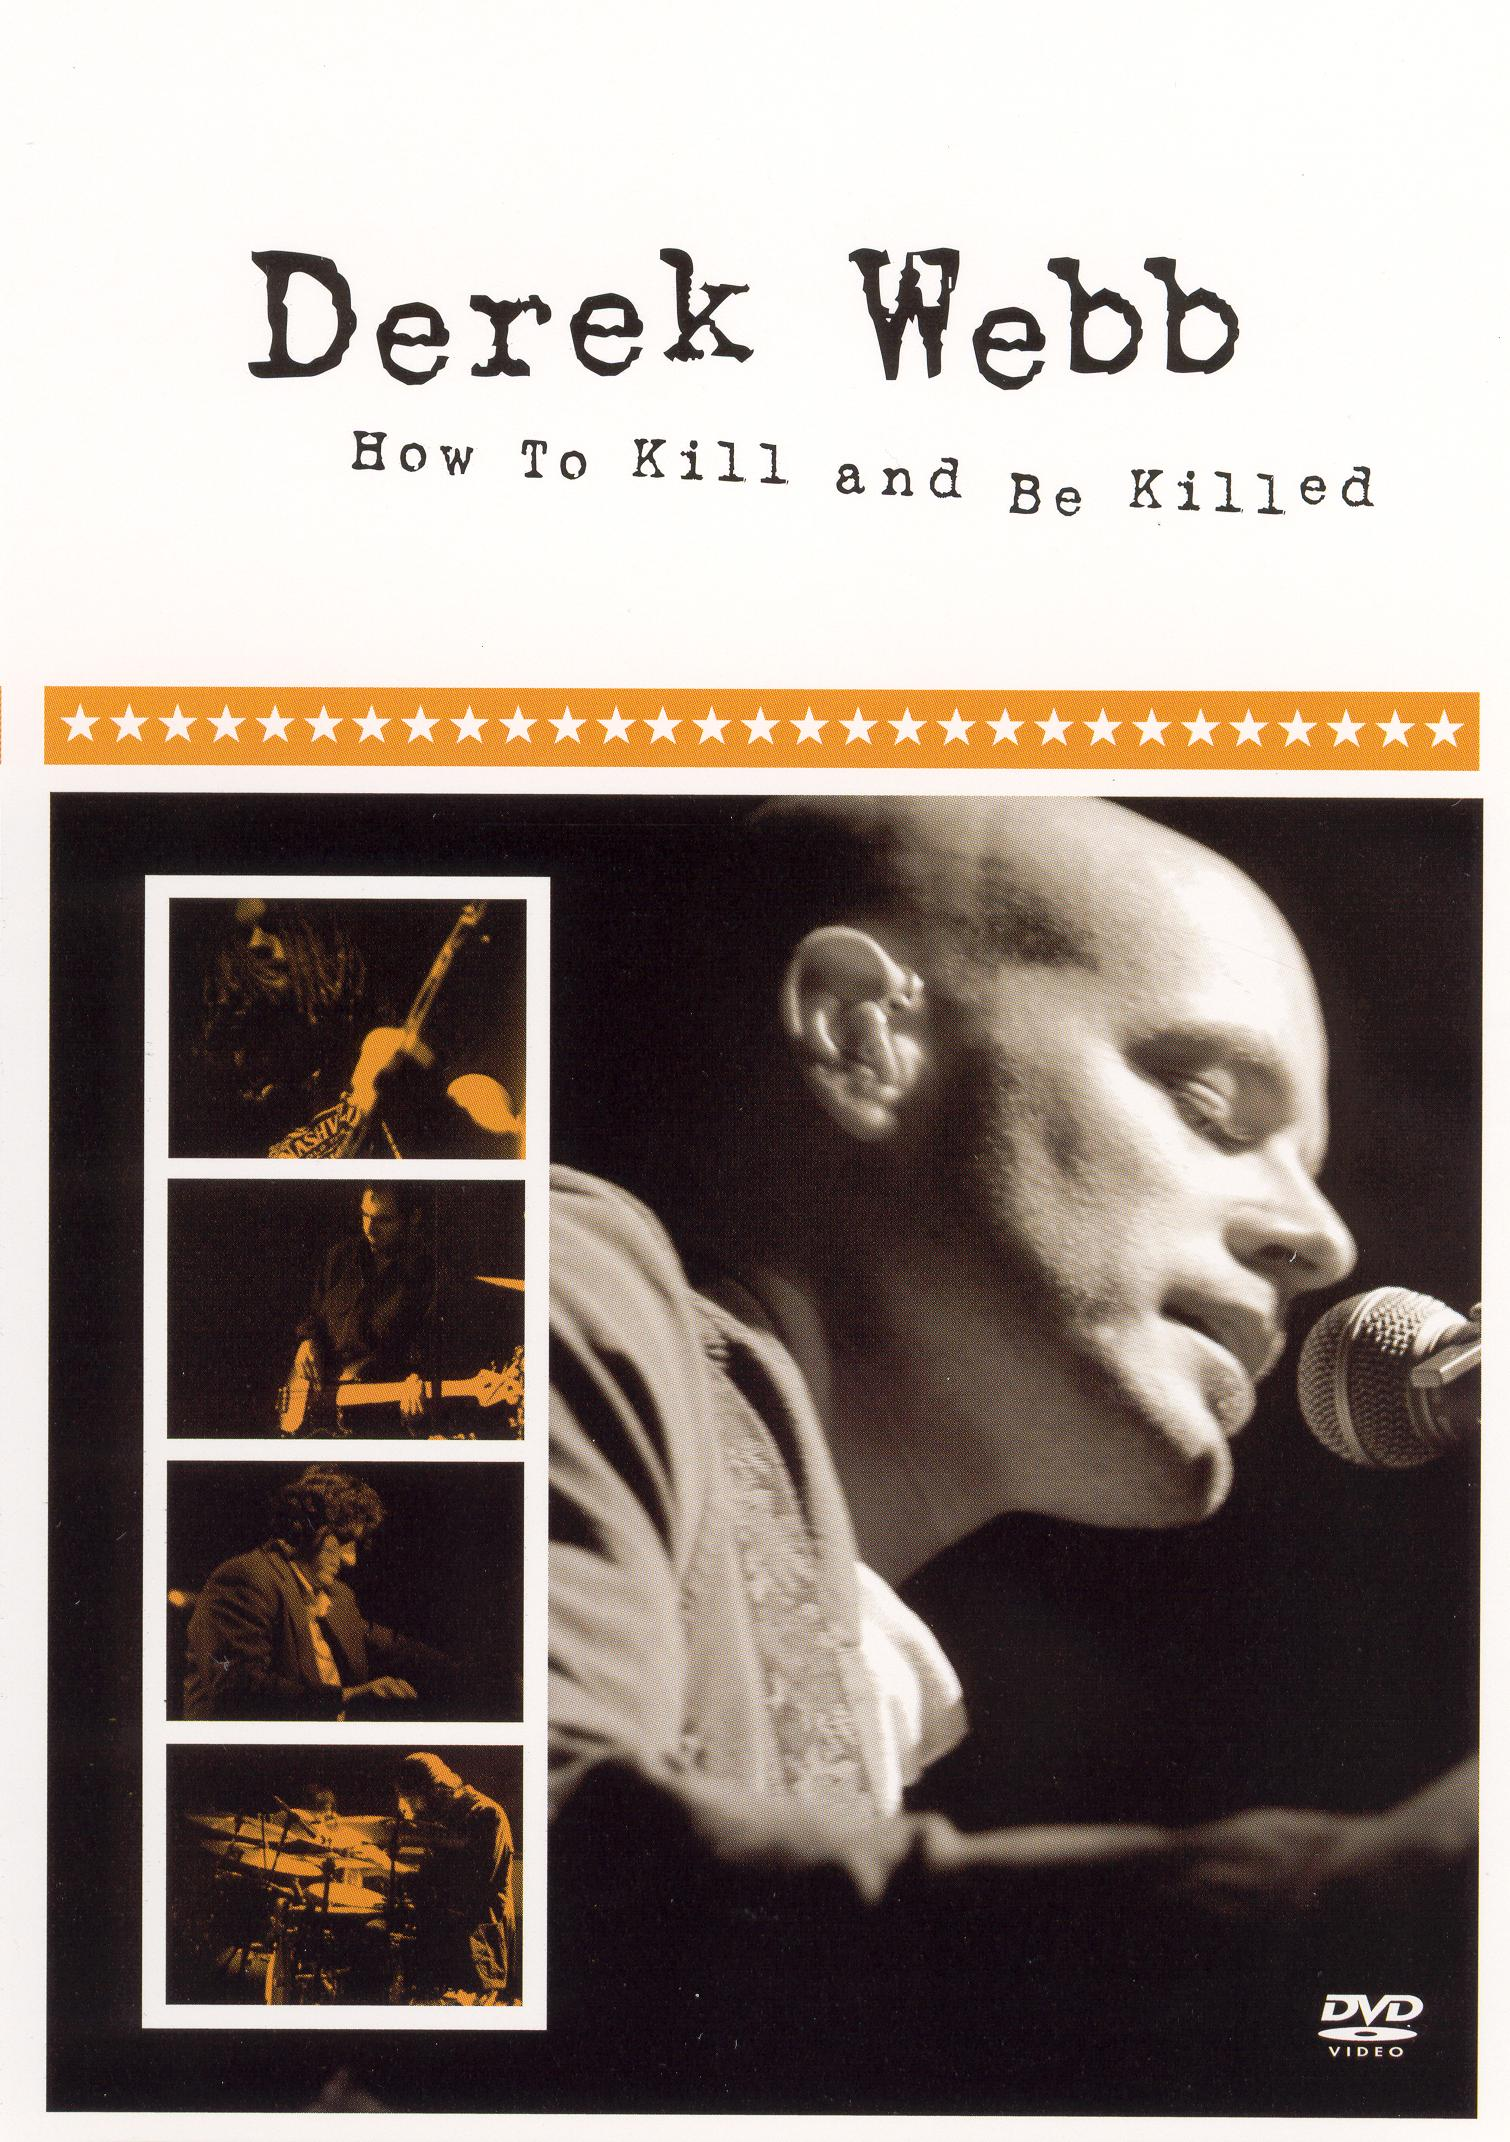 Derek Webb: How to Kill and Be Killed